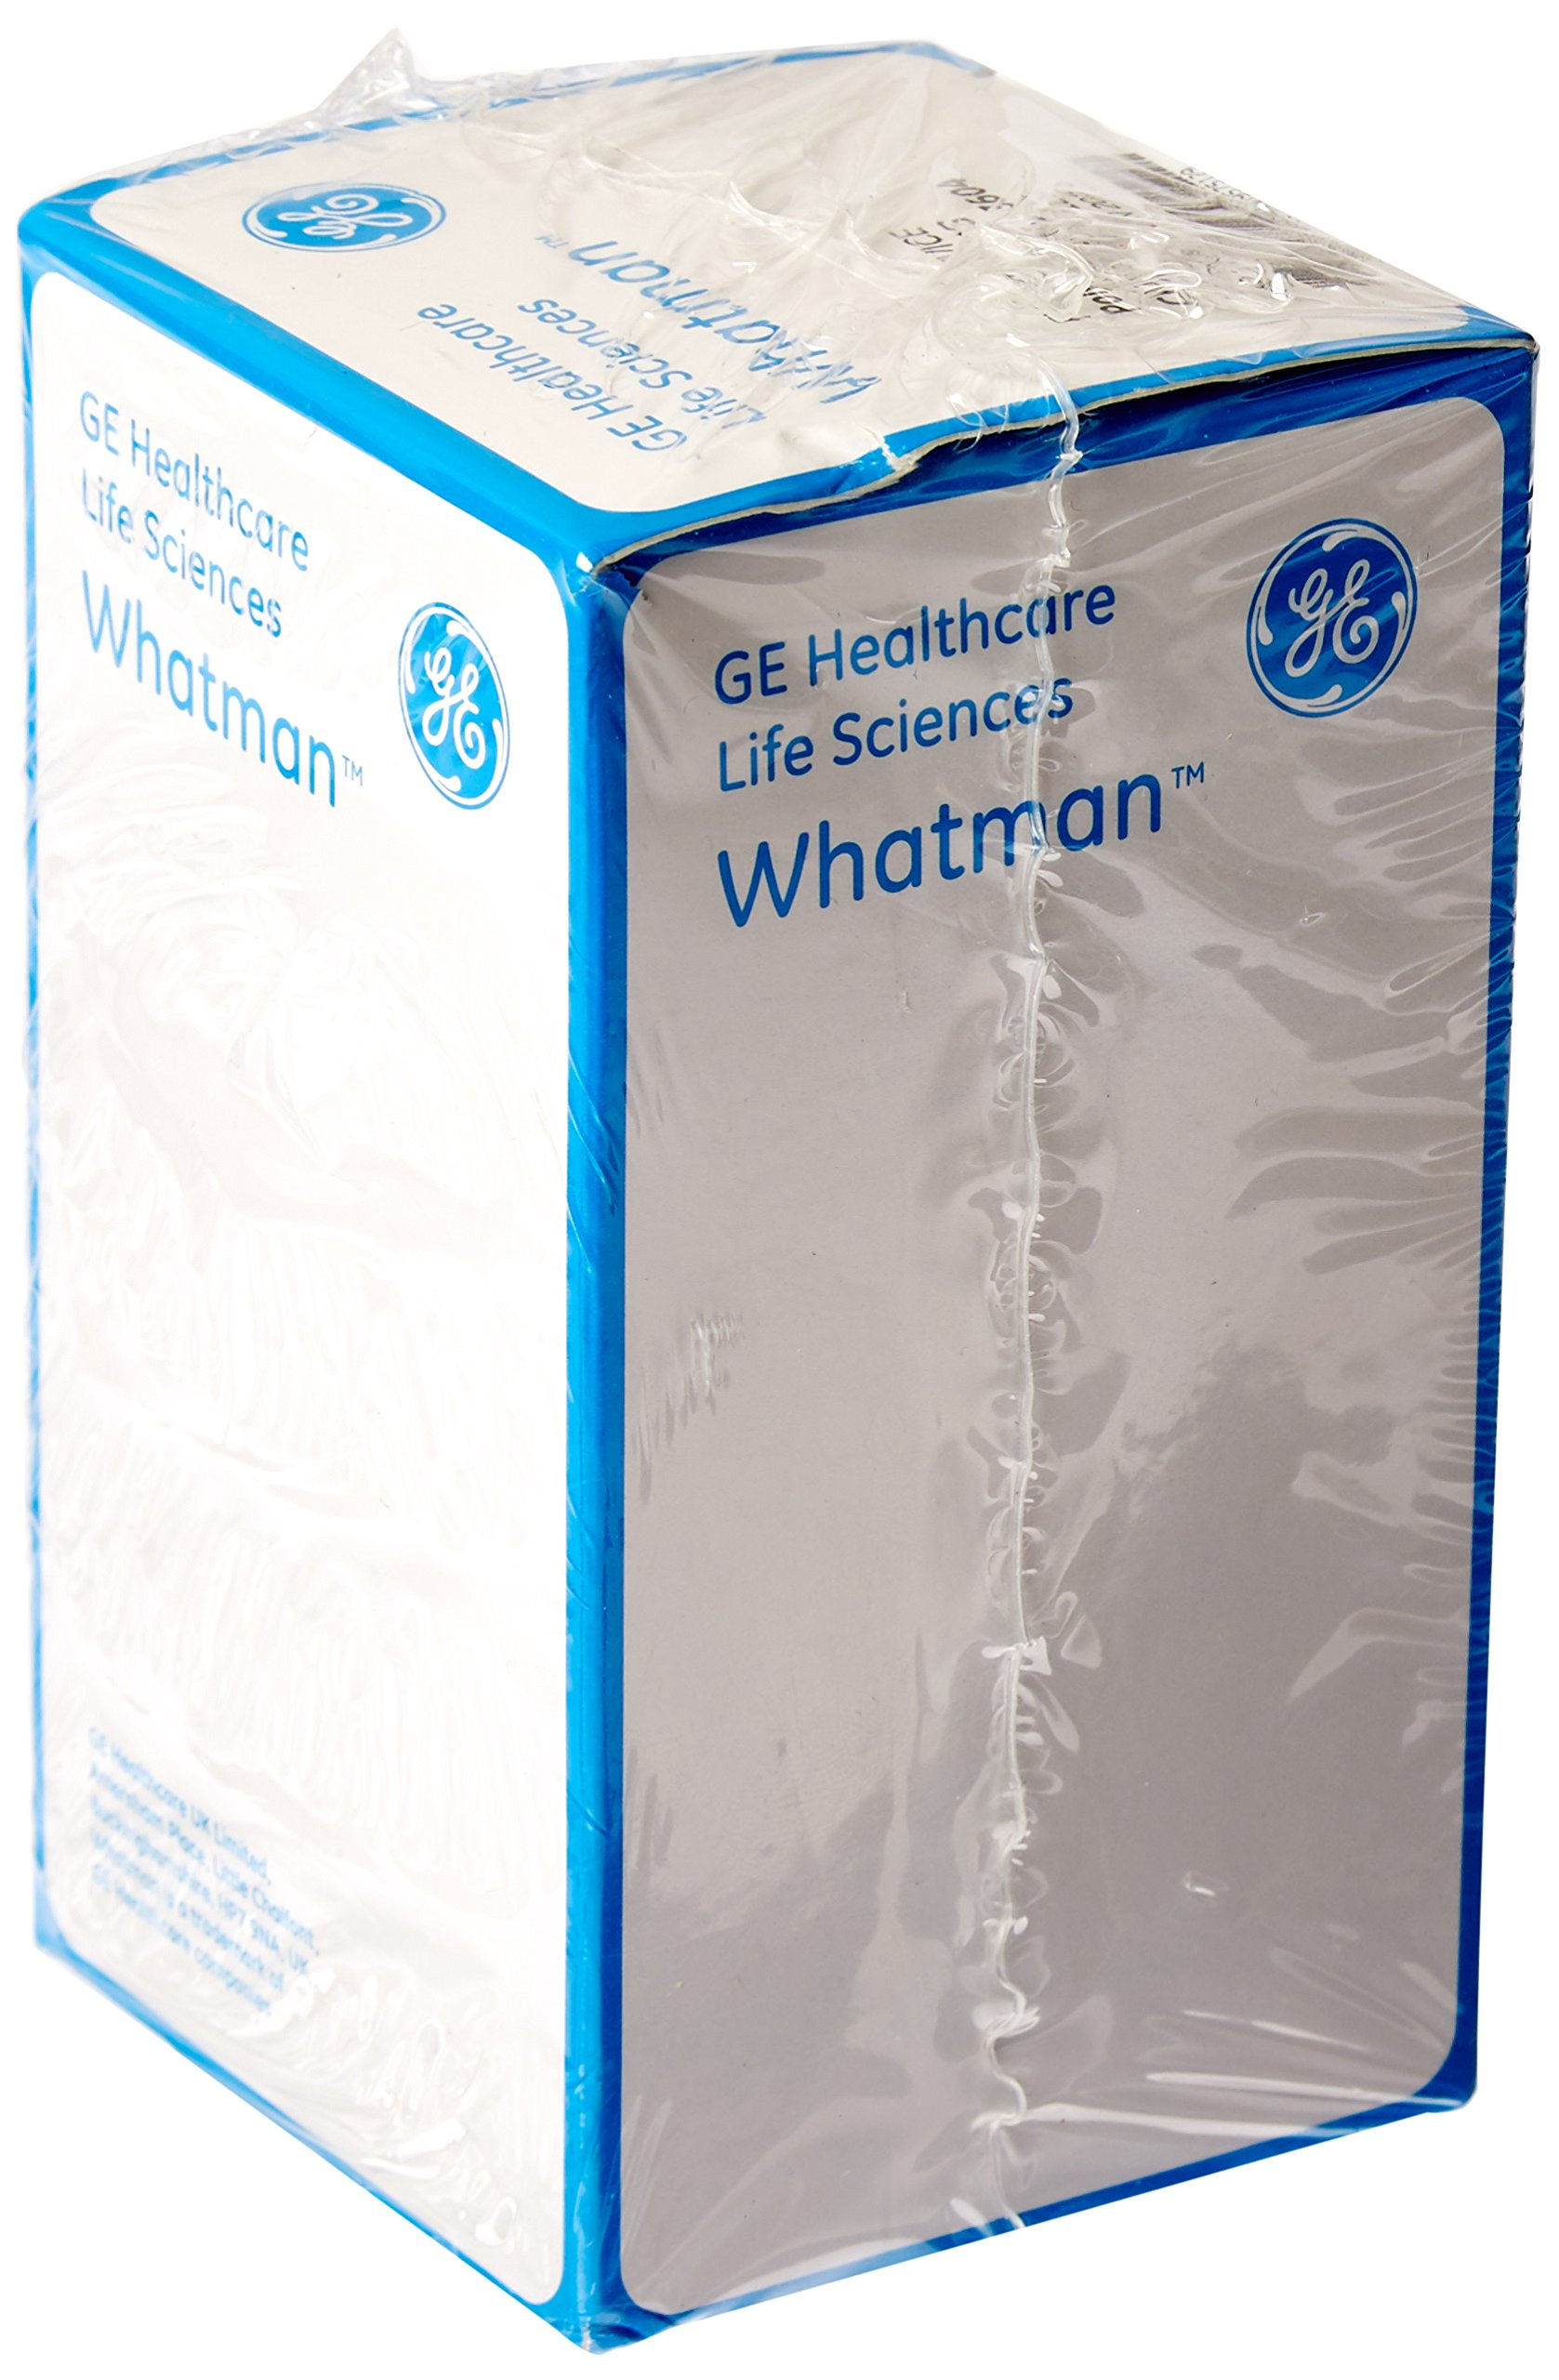 Whatman 6705-3604 Polycap AS 36 Nylon Membrane Capsule Filter with SB Inlet and Outlet, 60 psi Maximum Pressure, 0.45 Micron by Whatman